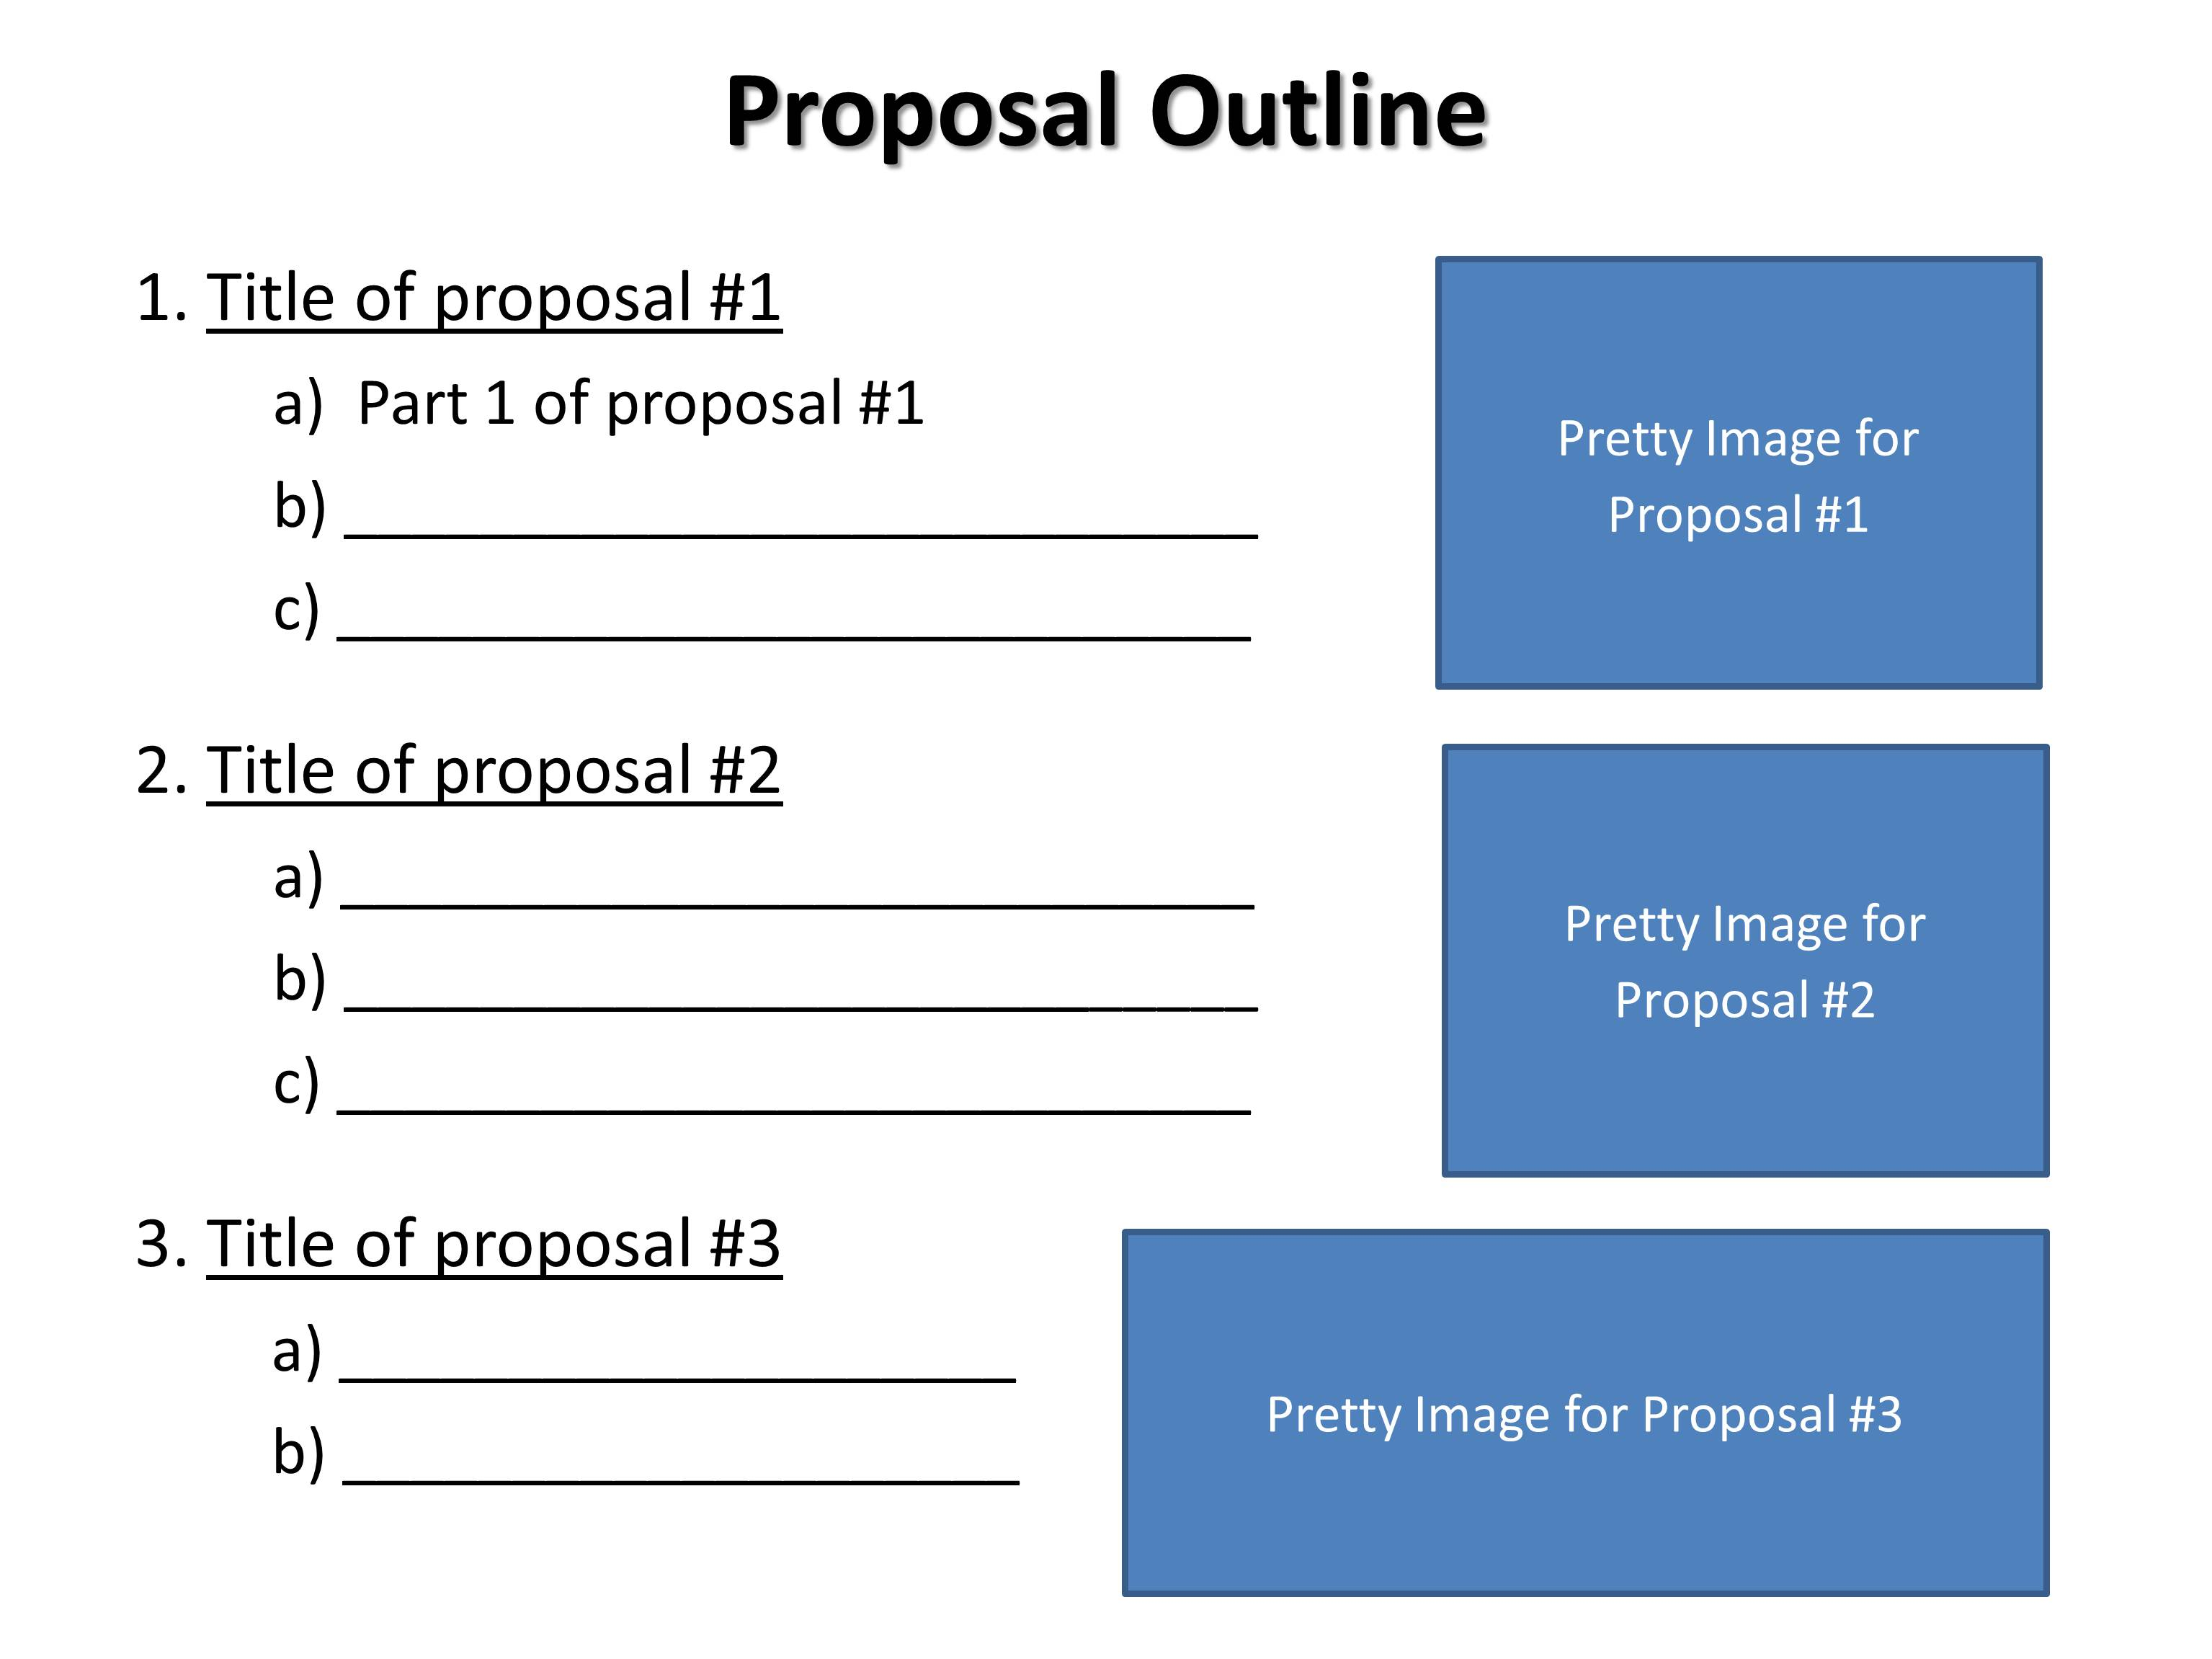 018 Research Paper Components Of Outline Proposal Imposing Main A Full